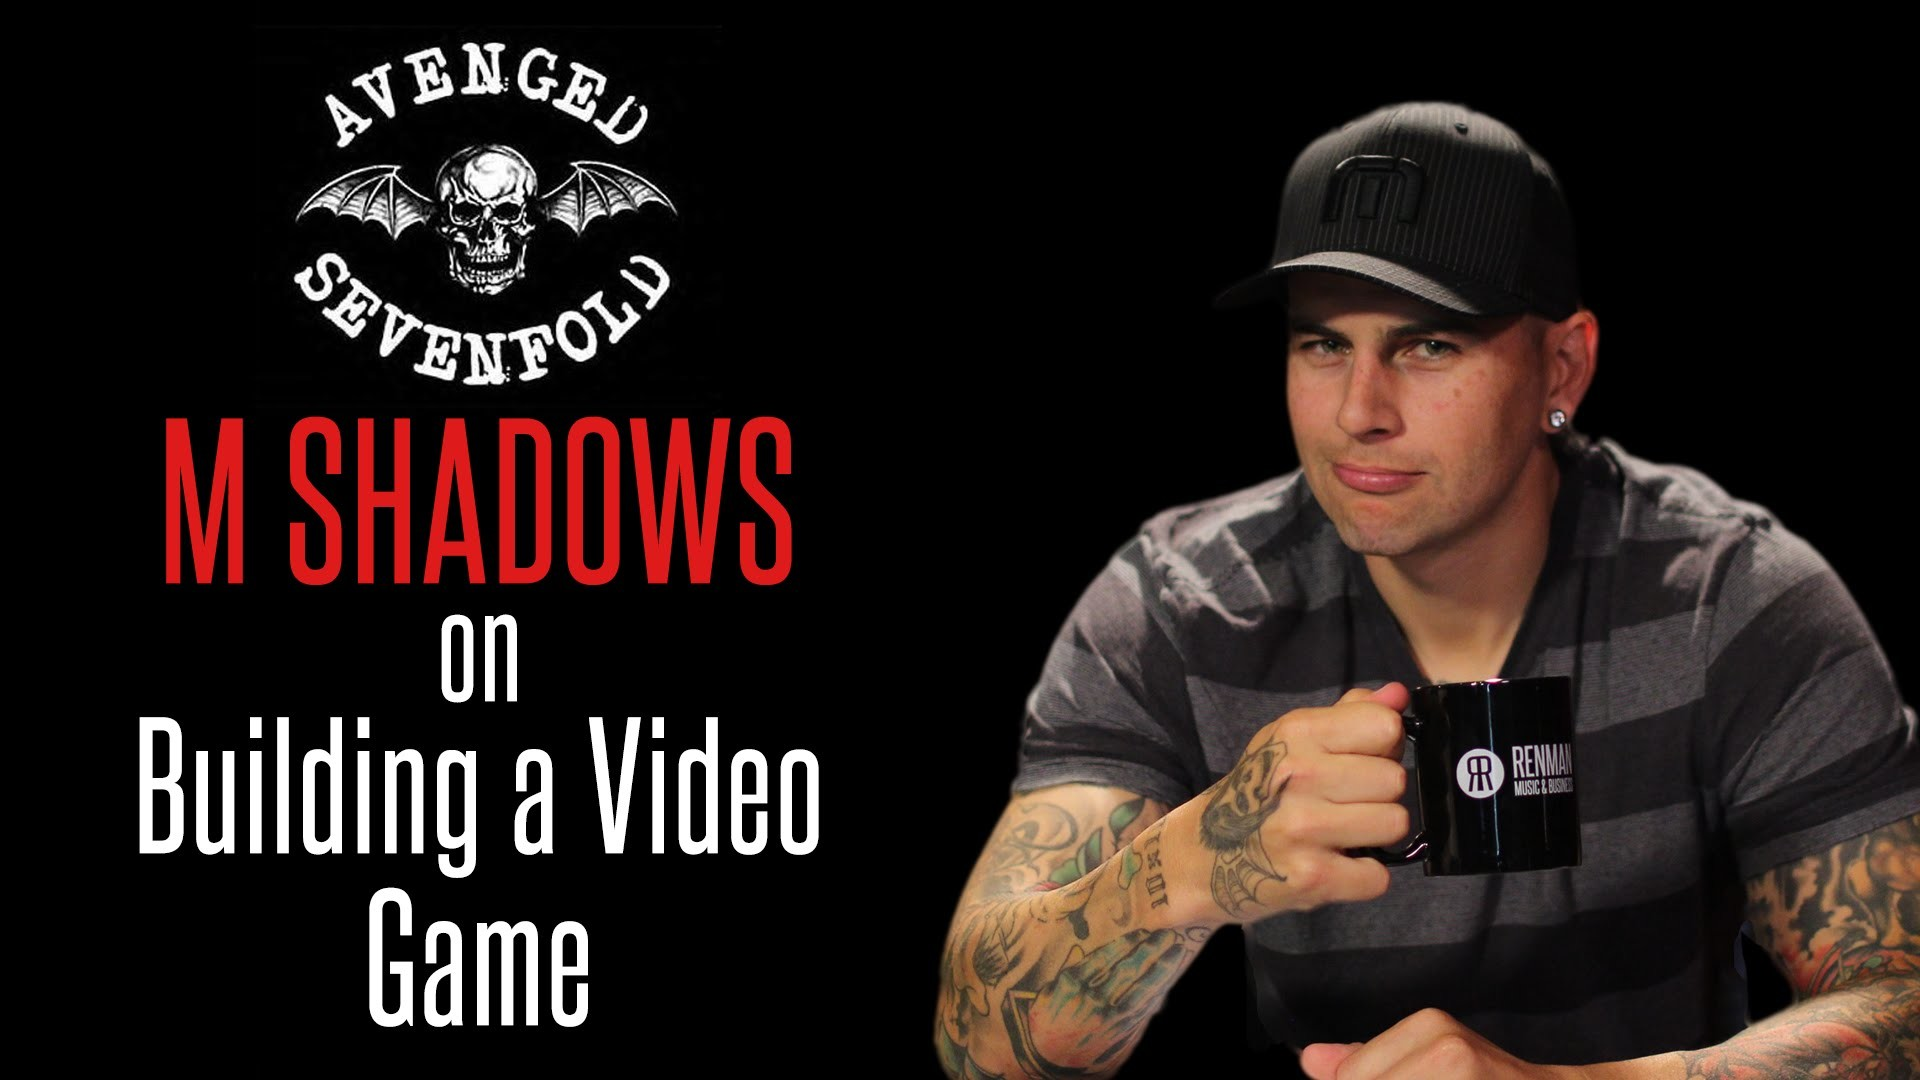 """M Shadows of Avenged Sevenfold on Building the Video Game """"Death Bat"""" –  YouTube"""